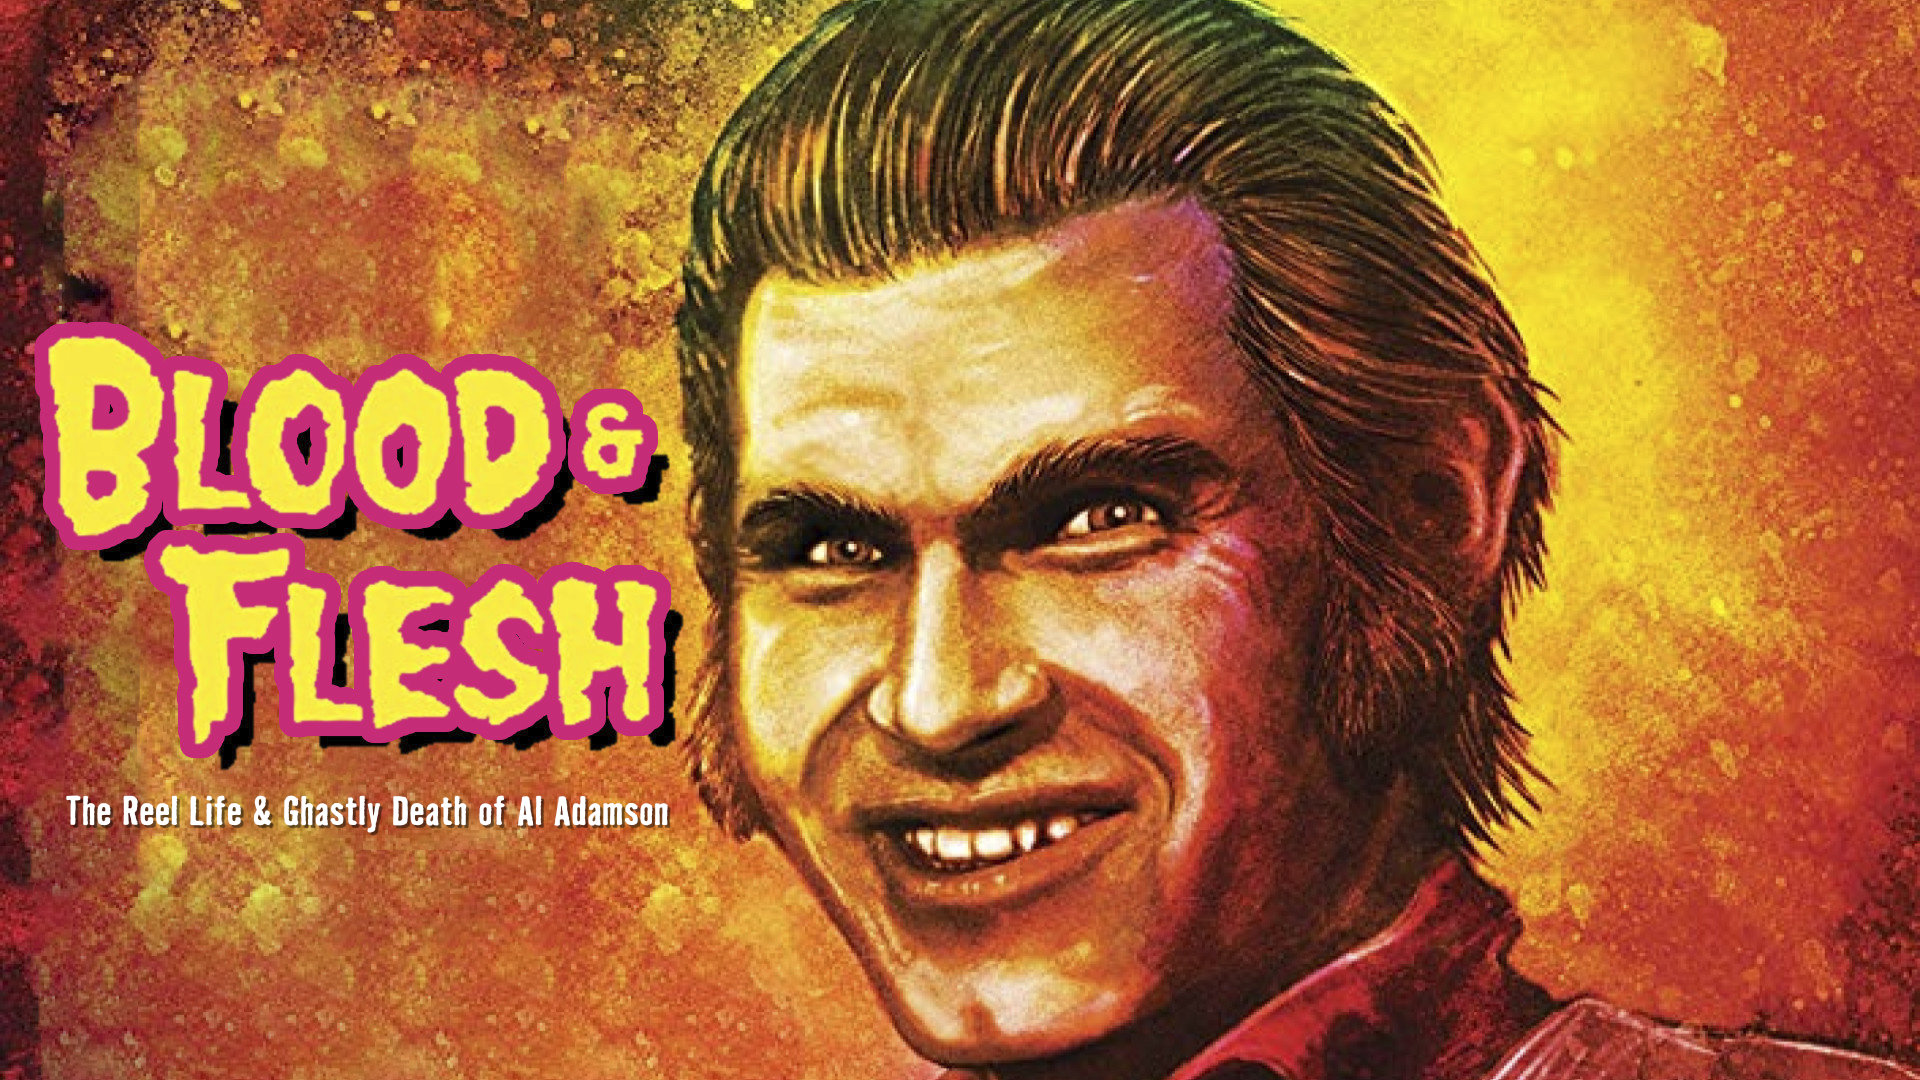 Blood & Flesh - The Reel Life & Ghastly Death of Al Adamson